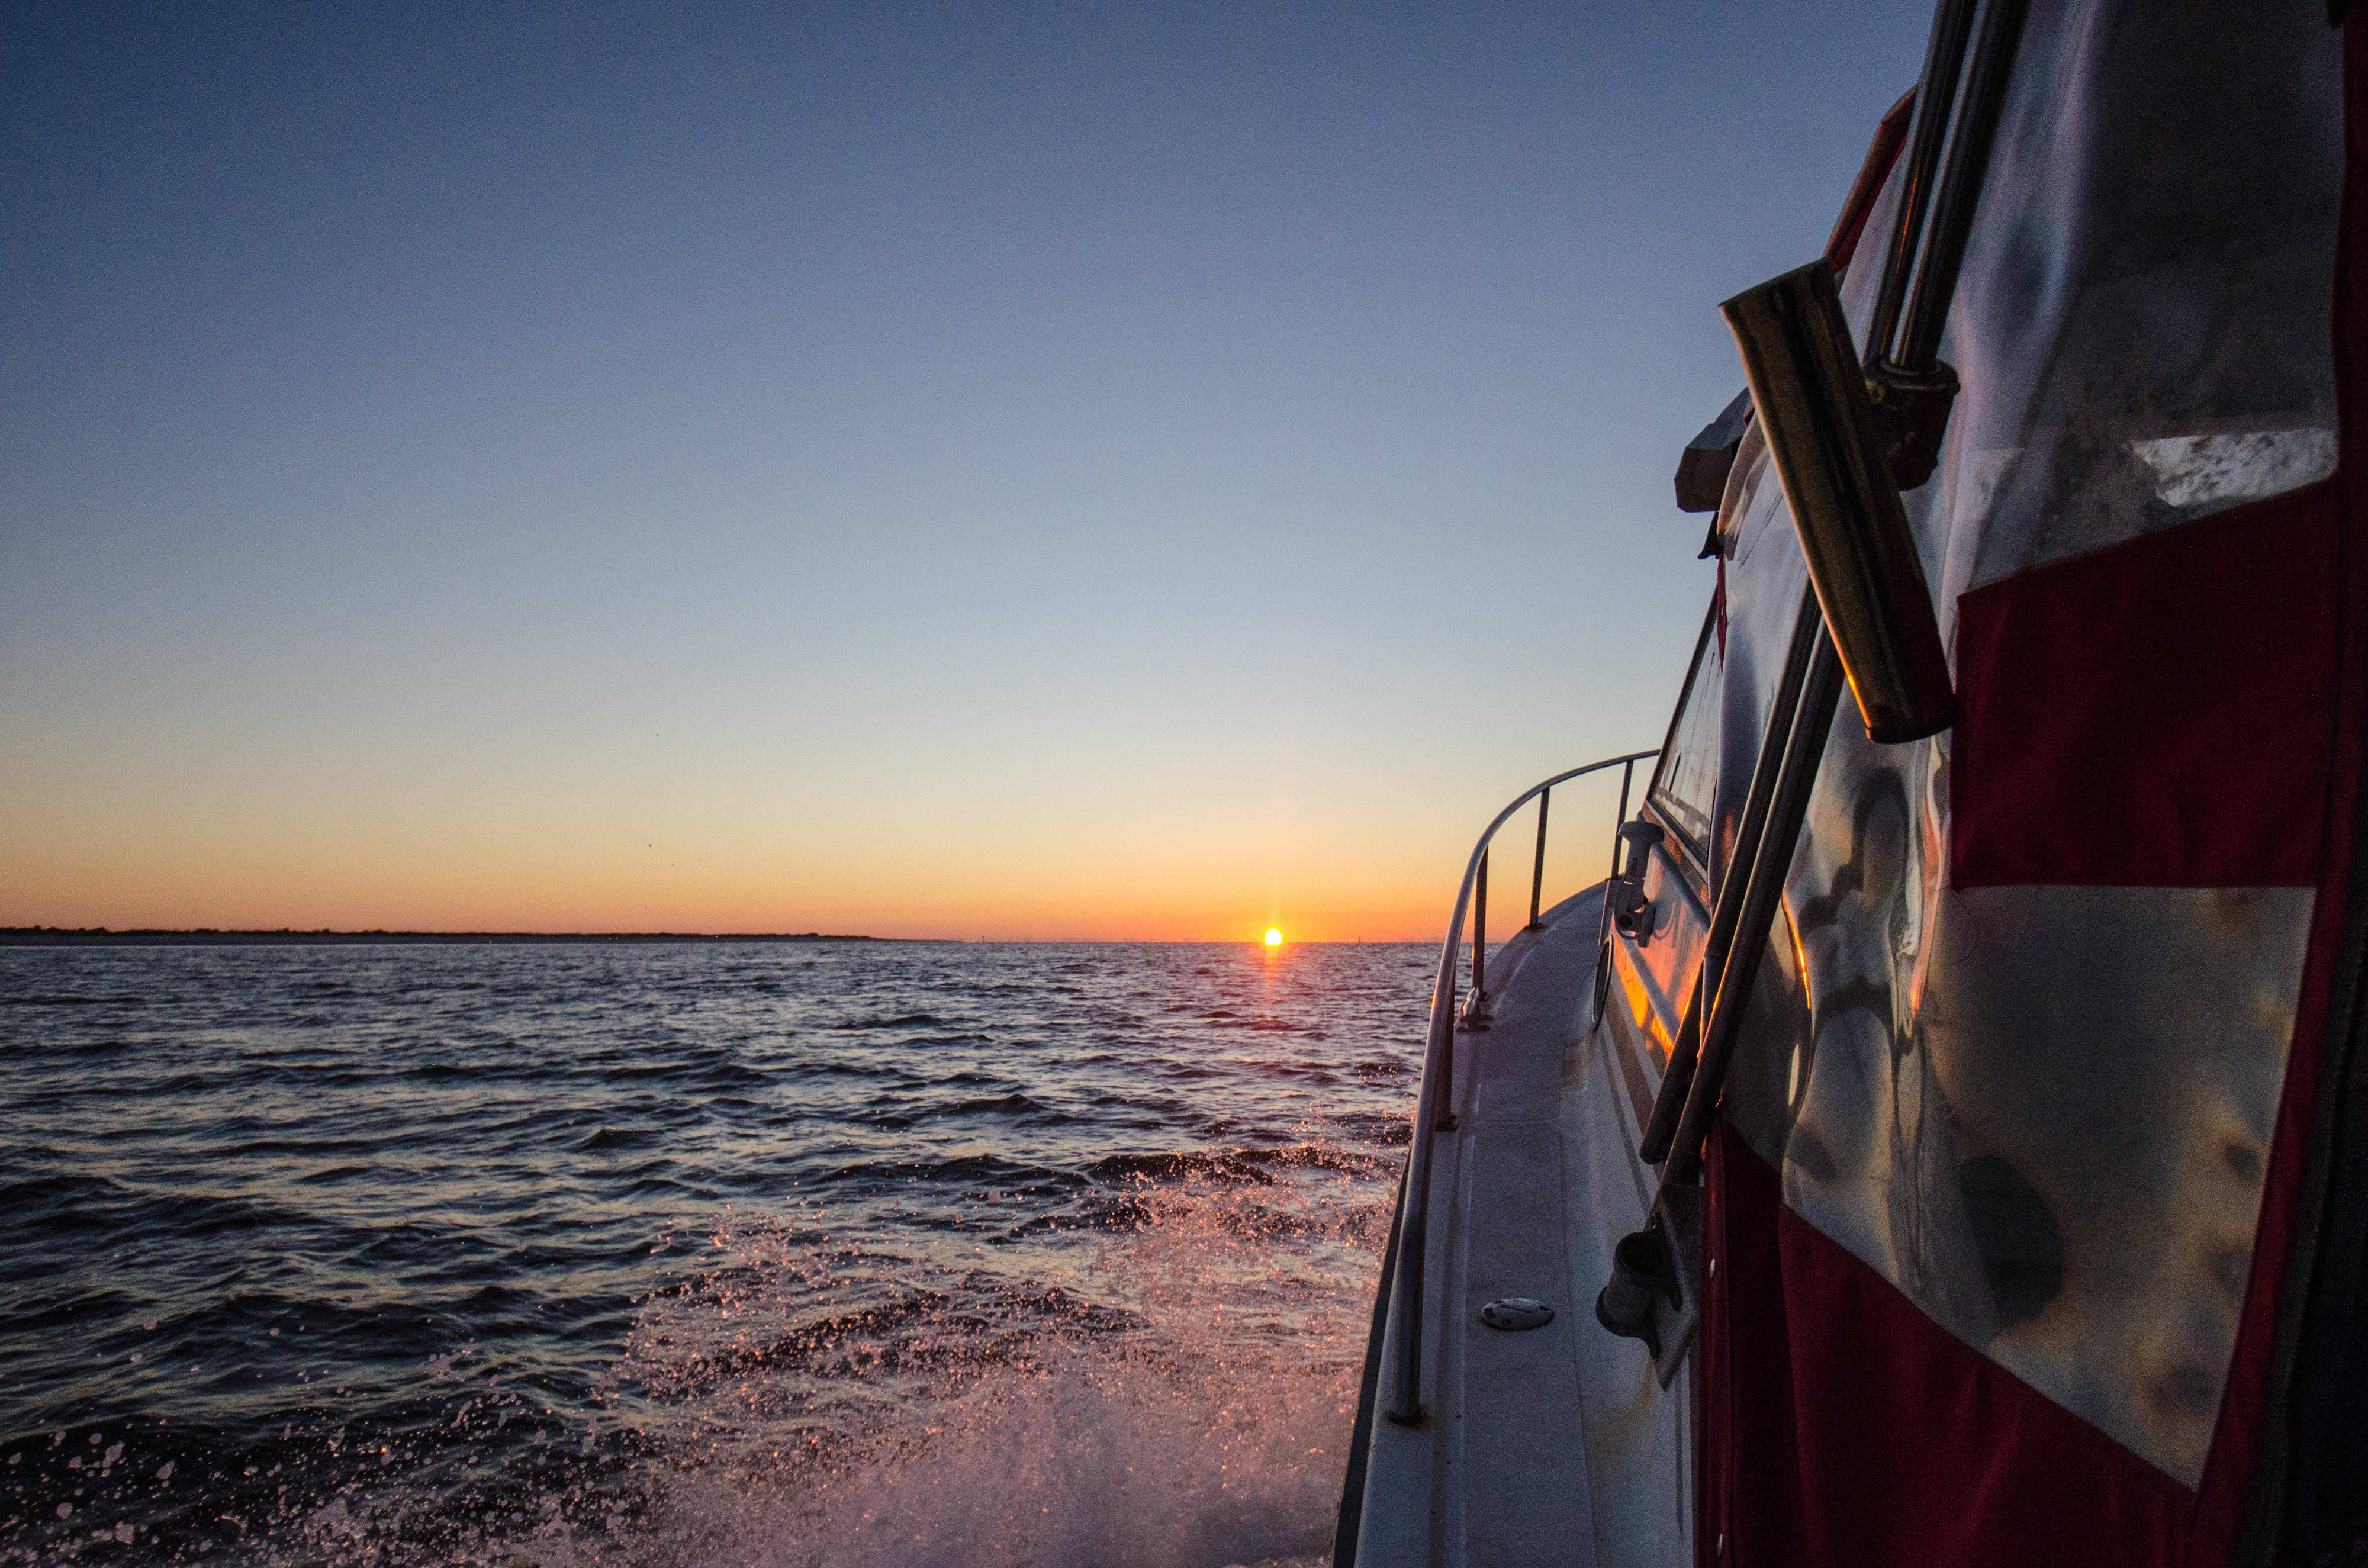 sunrise seen from fishing boat